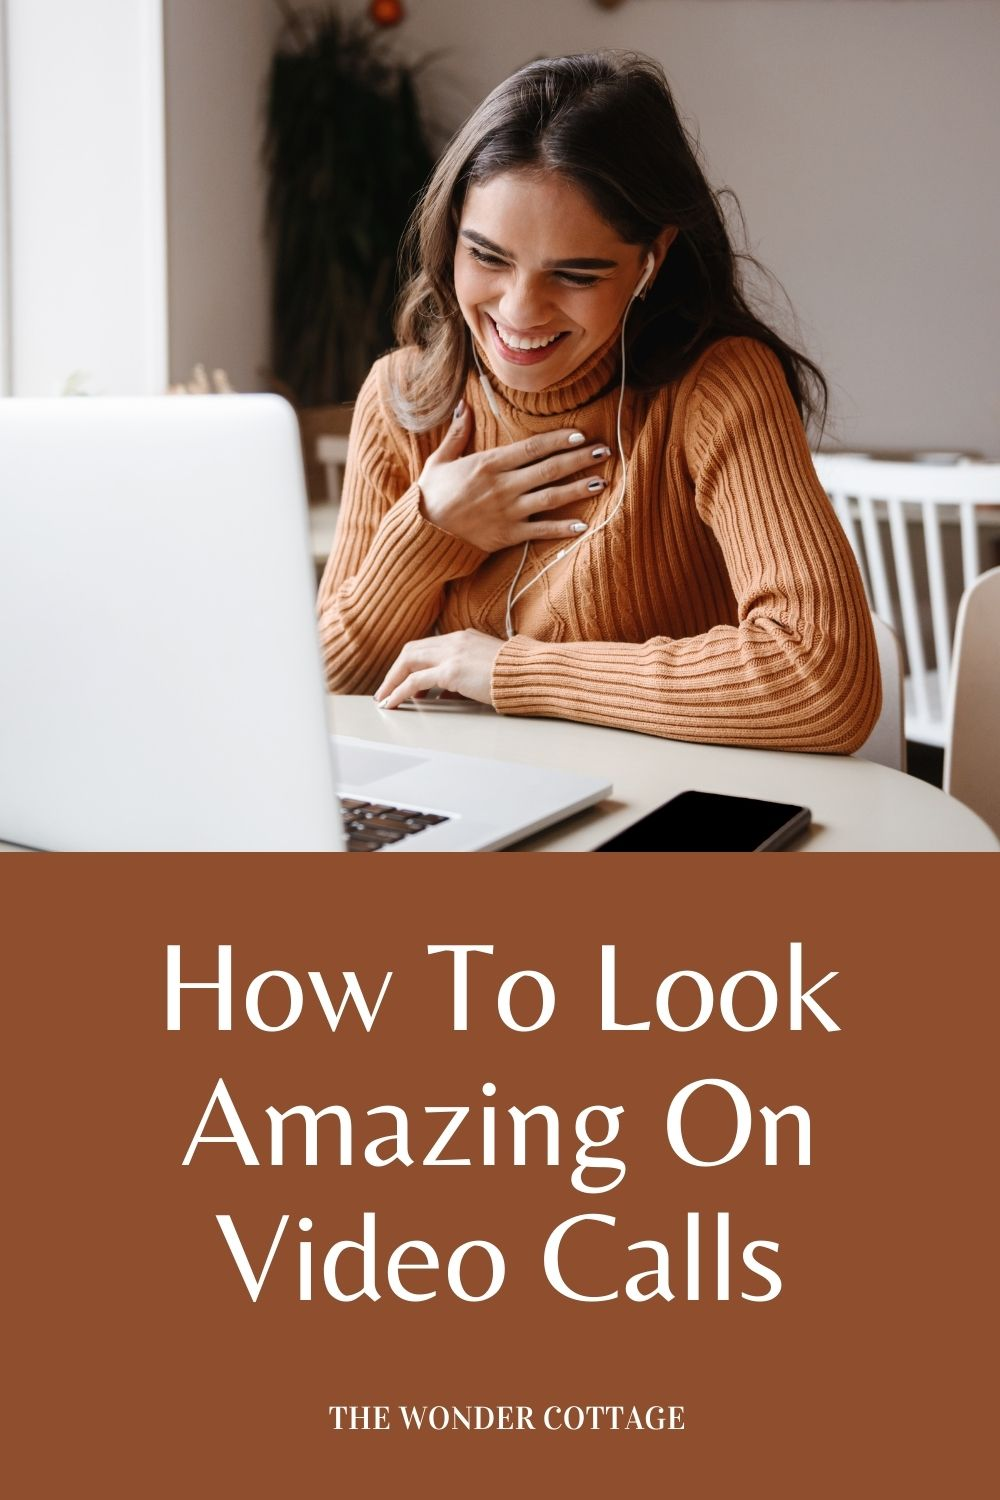 How to look amazing on video calls